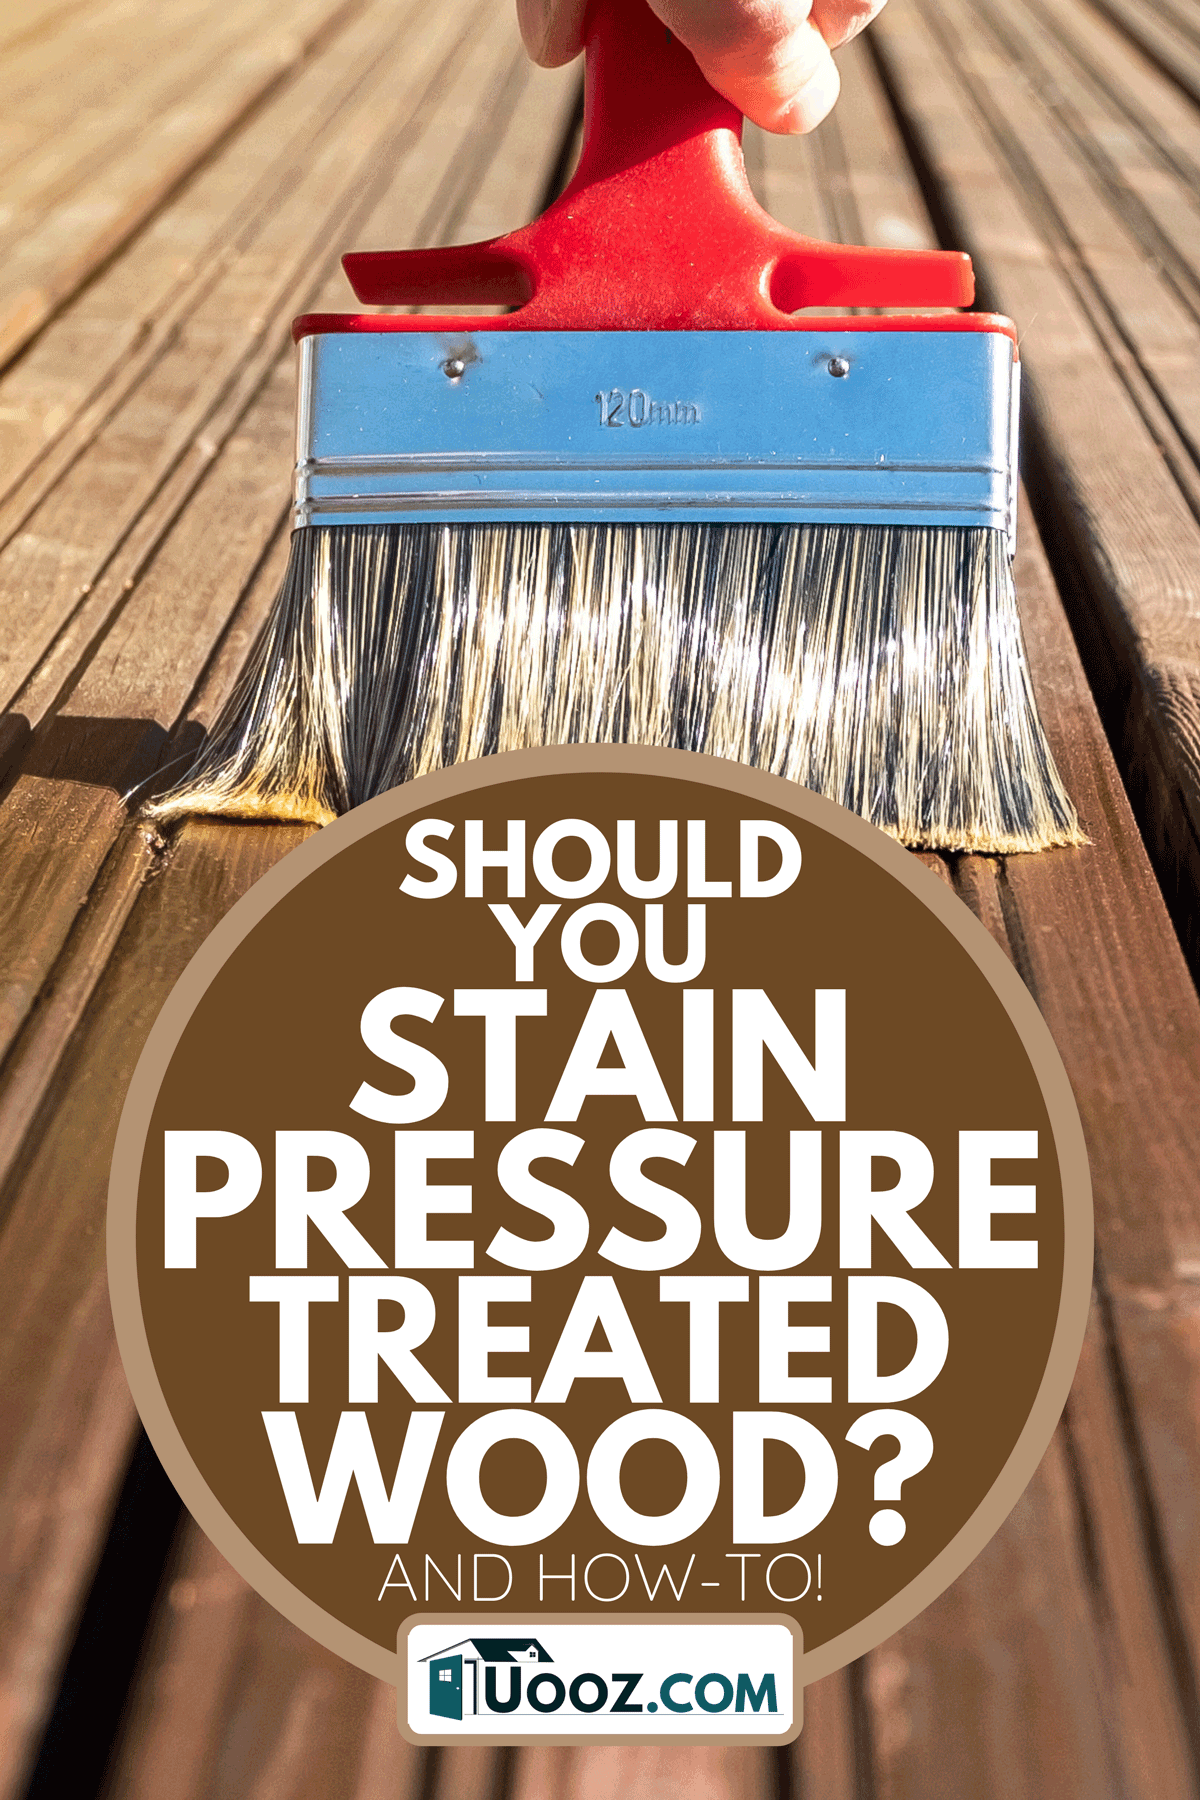 A painter paints the surface of a wooden board with a brush, Should You Stain Pressure-Treated Wood?